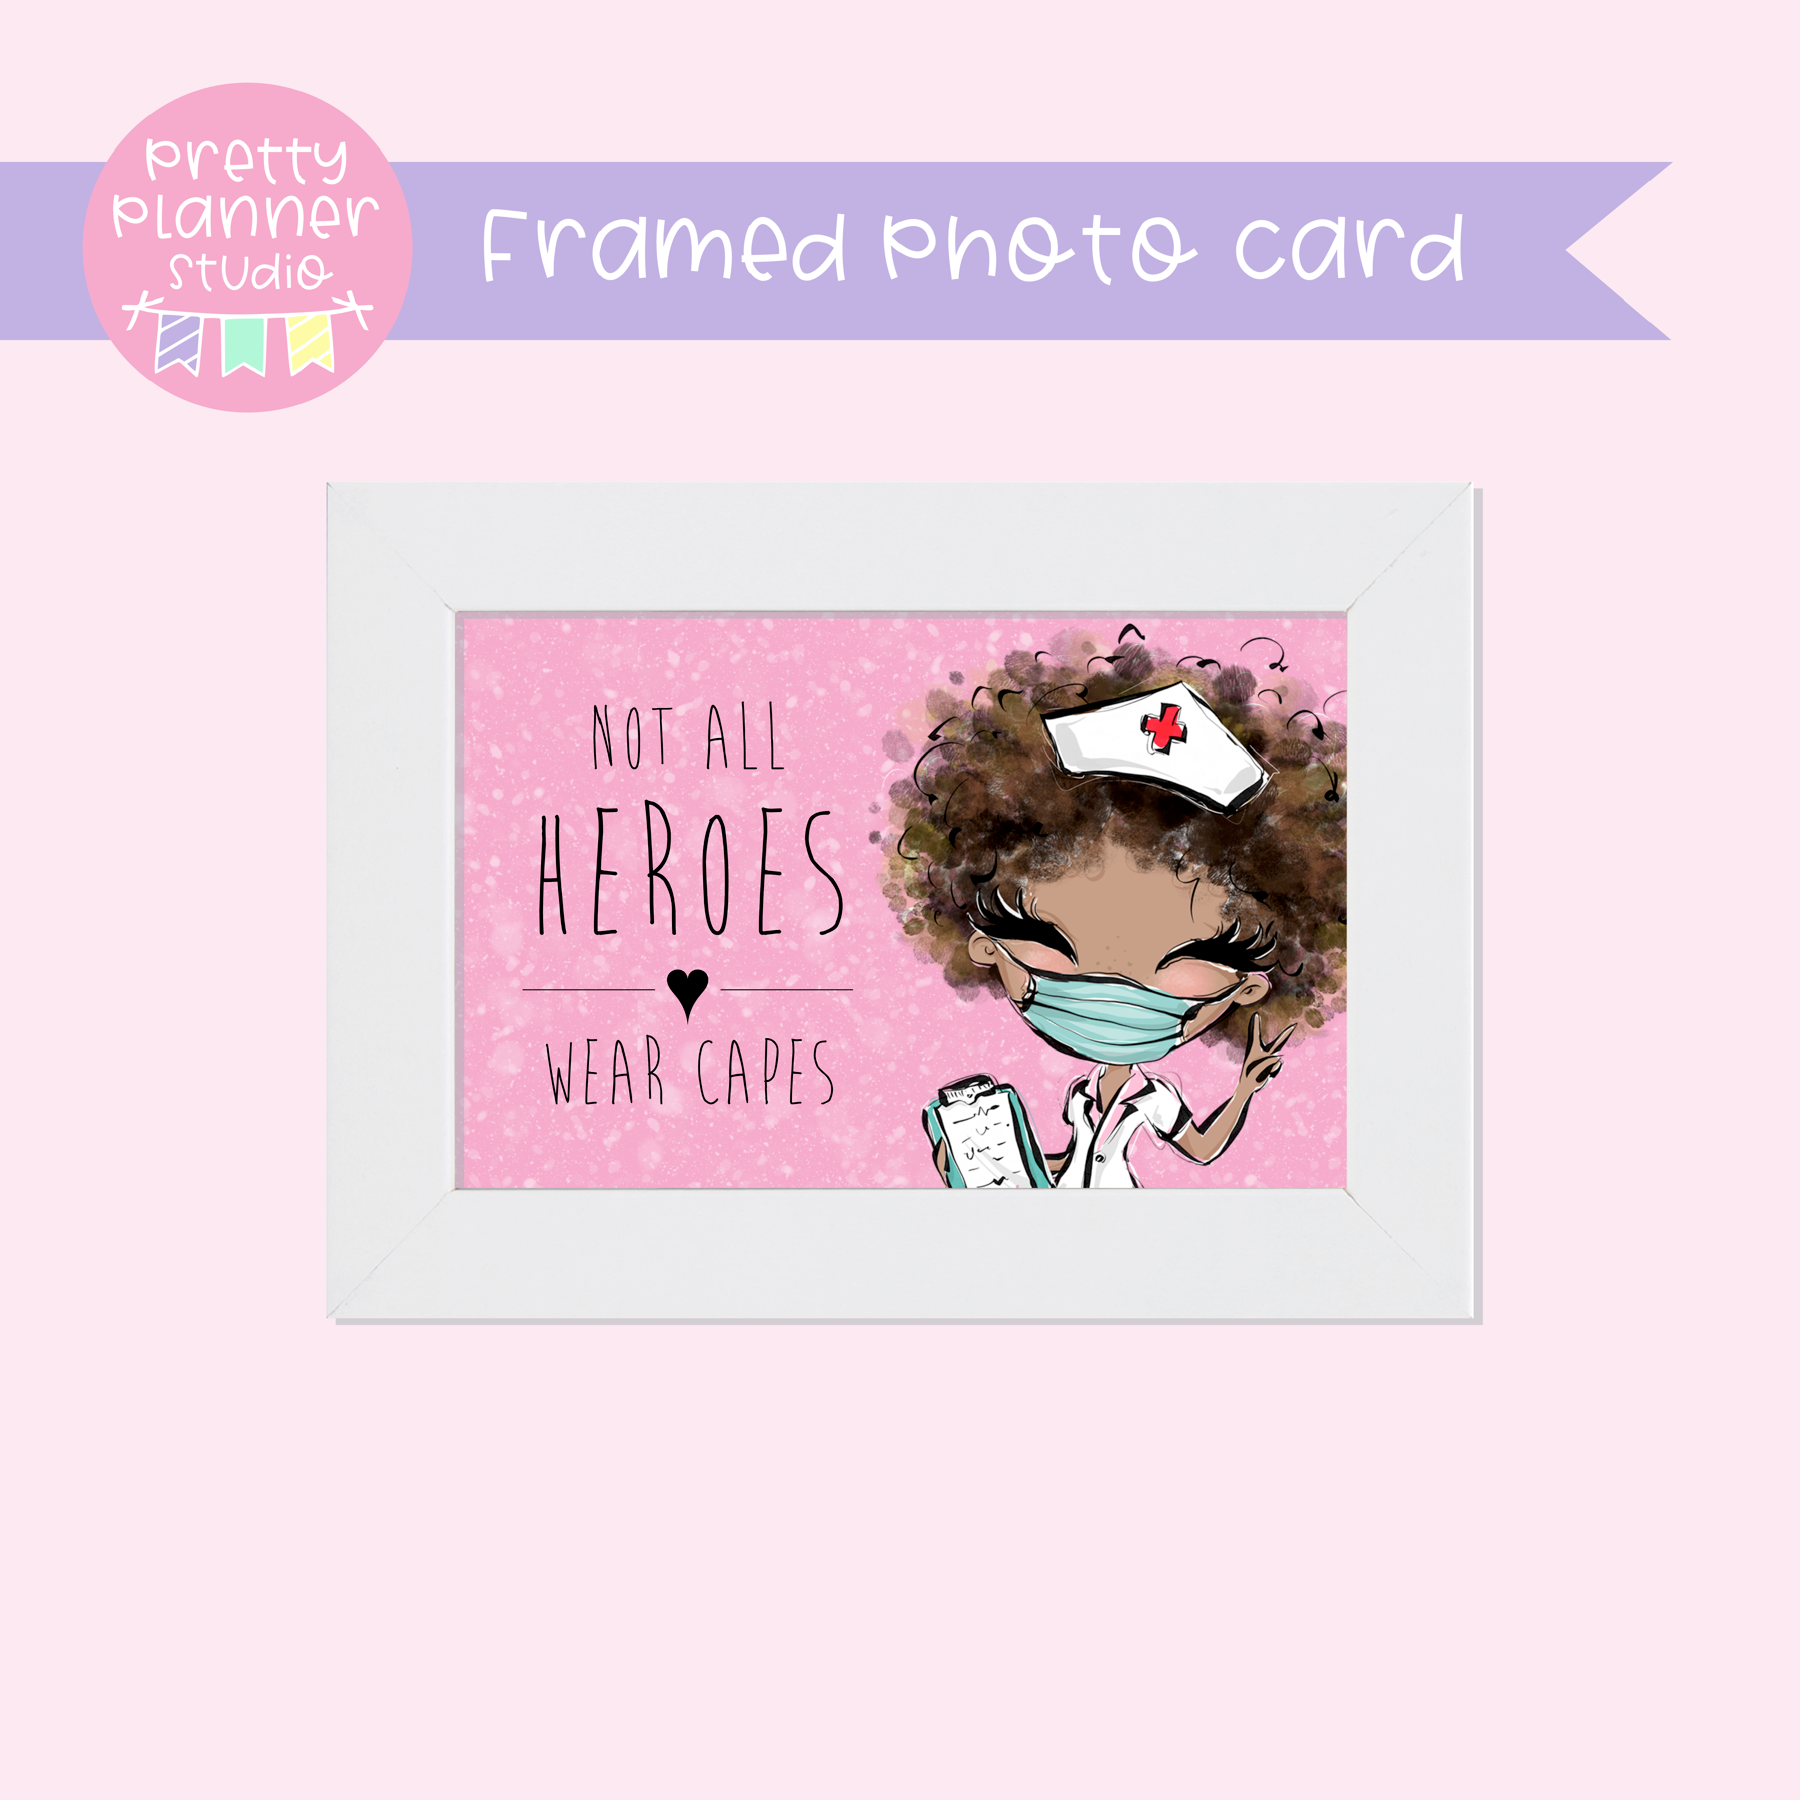 Medic Heroes | framed photo card - horizontal | nurse - style C | F-0806